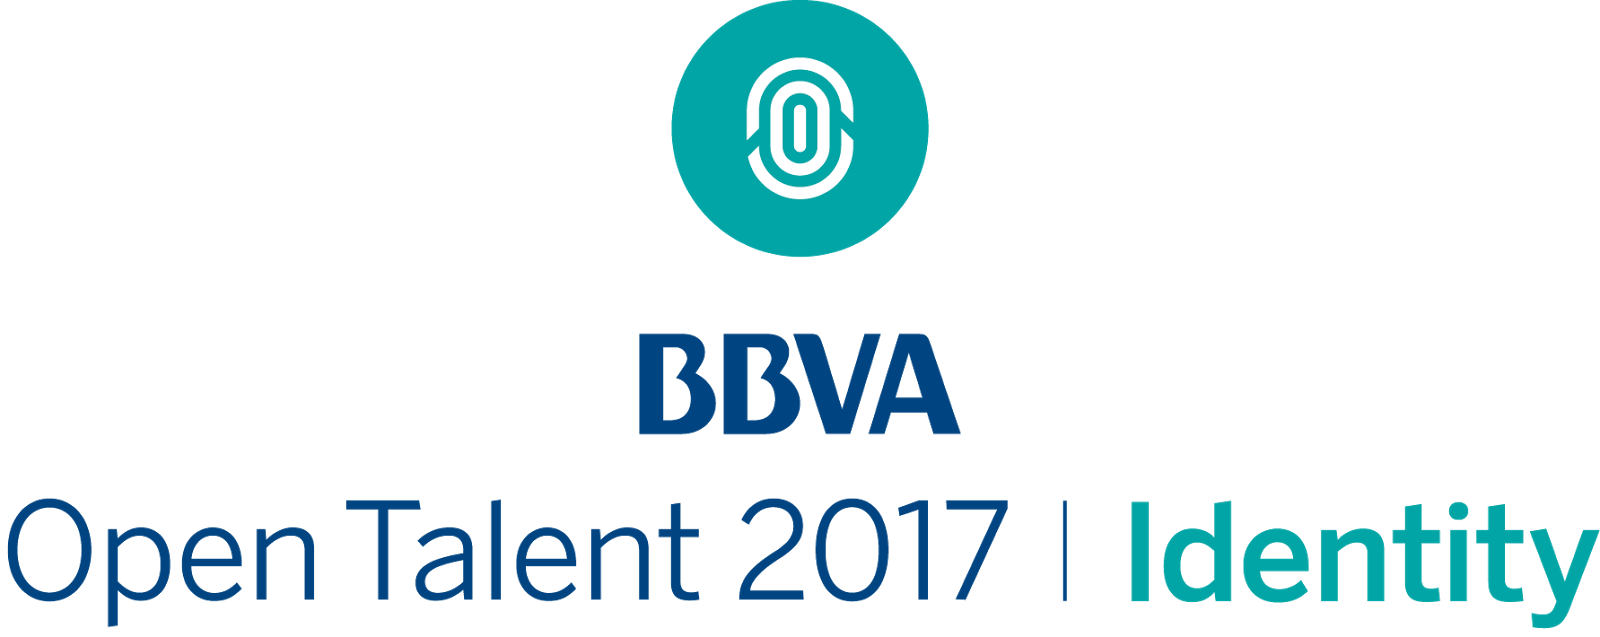 The World's Biggest FinTech Challenge is Live! Apply for BBVA Open Talent 2017 to Become BBVA Open Innovation Universe Hero